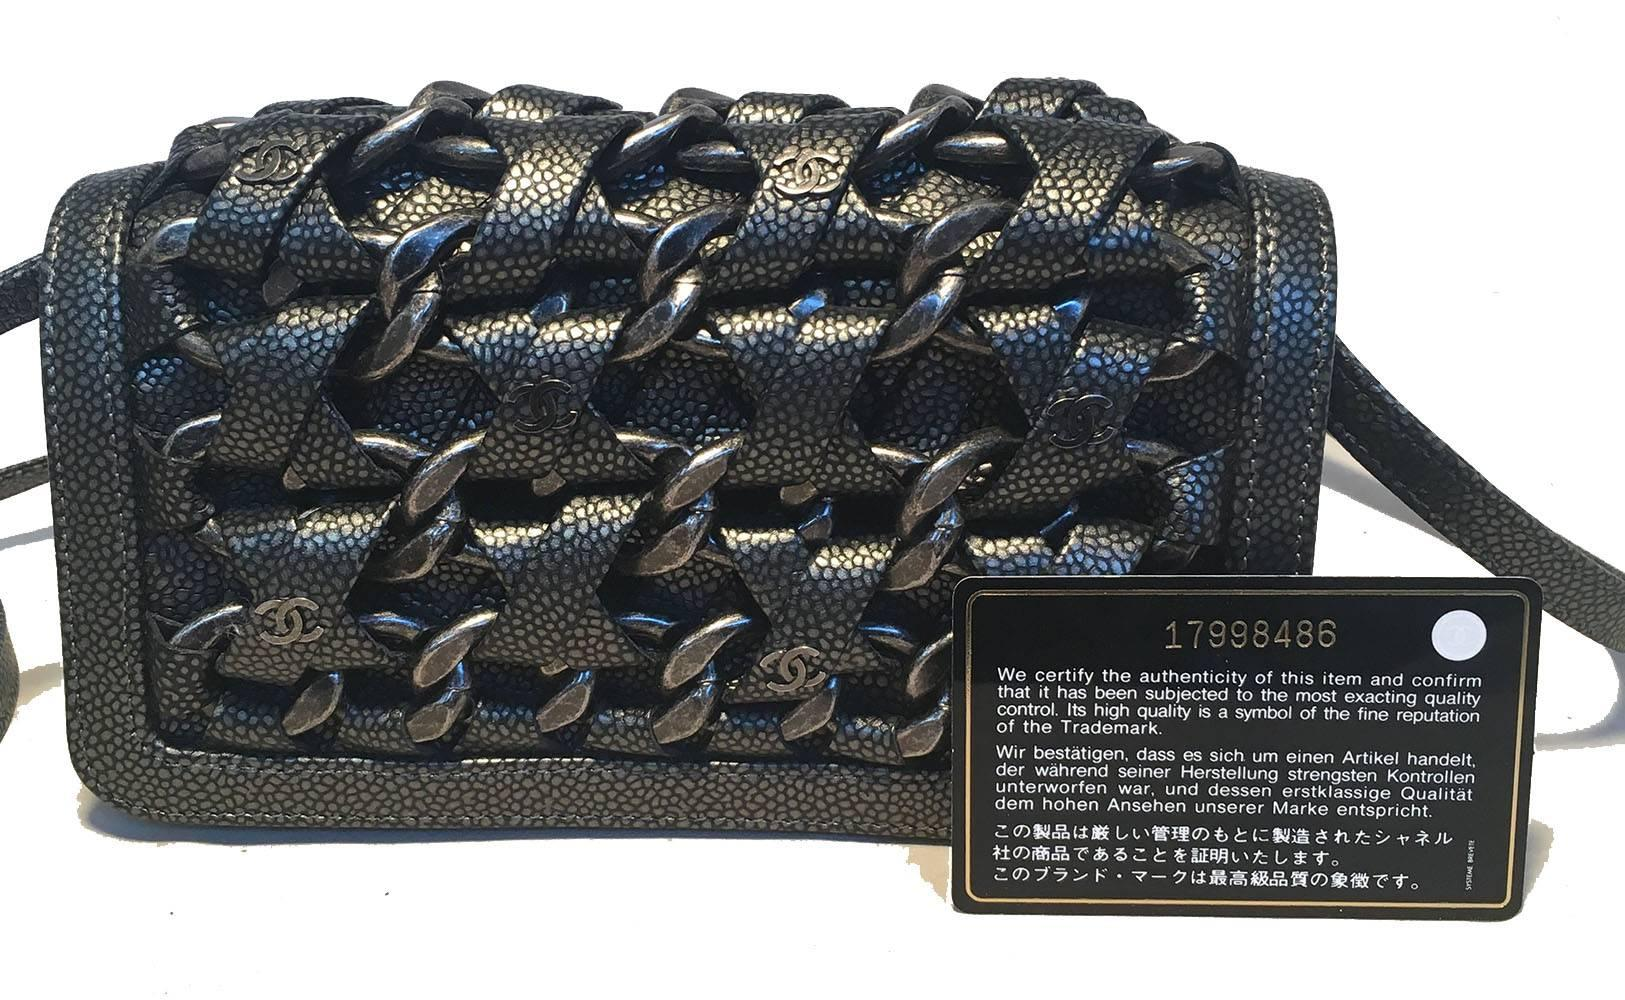 d7384e8a7f0e Chanel Gunmetal Caviar Leather and Chain Woven Classic Flap Shoulder Bag  For Sale at 1stdibs